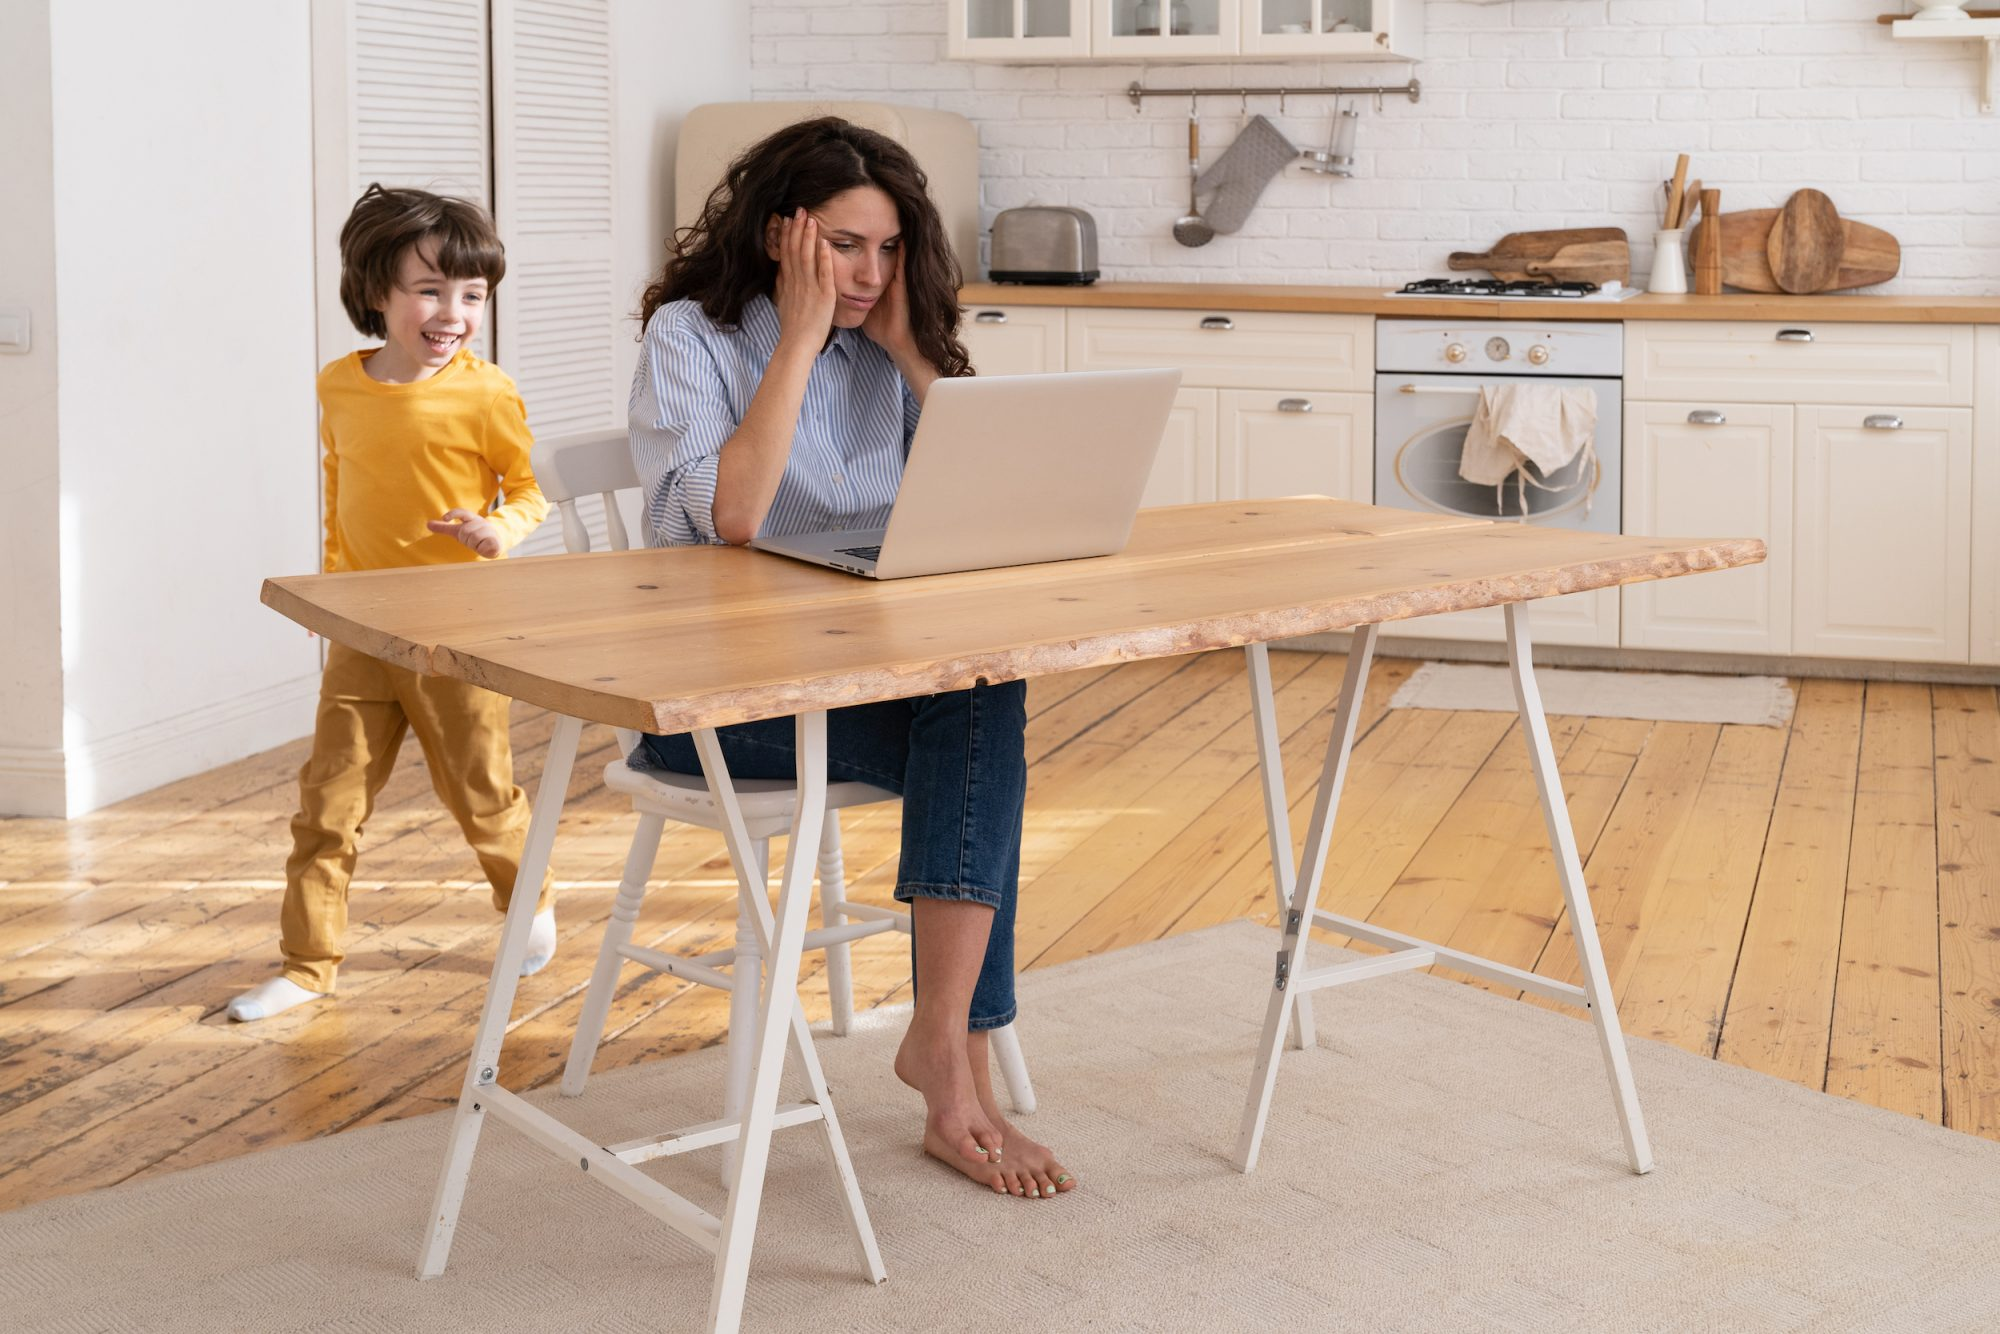 Distance learning is a nightmare for working mothers